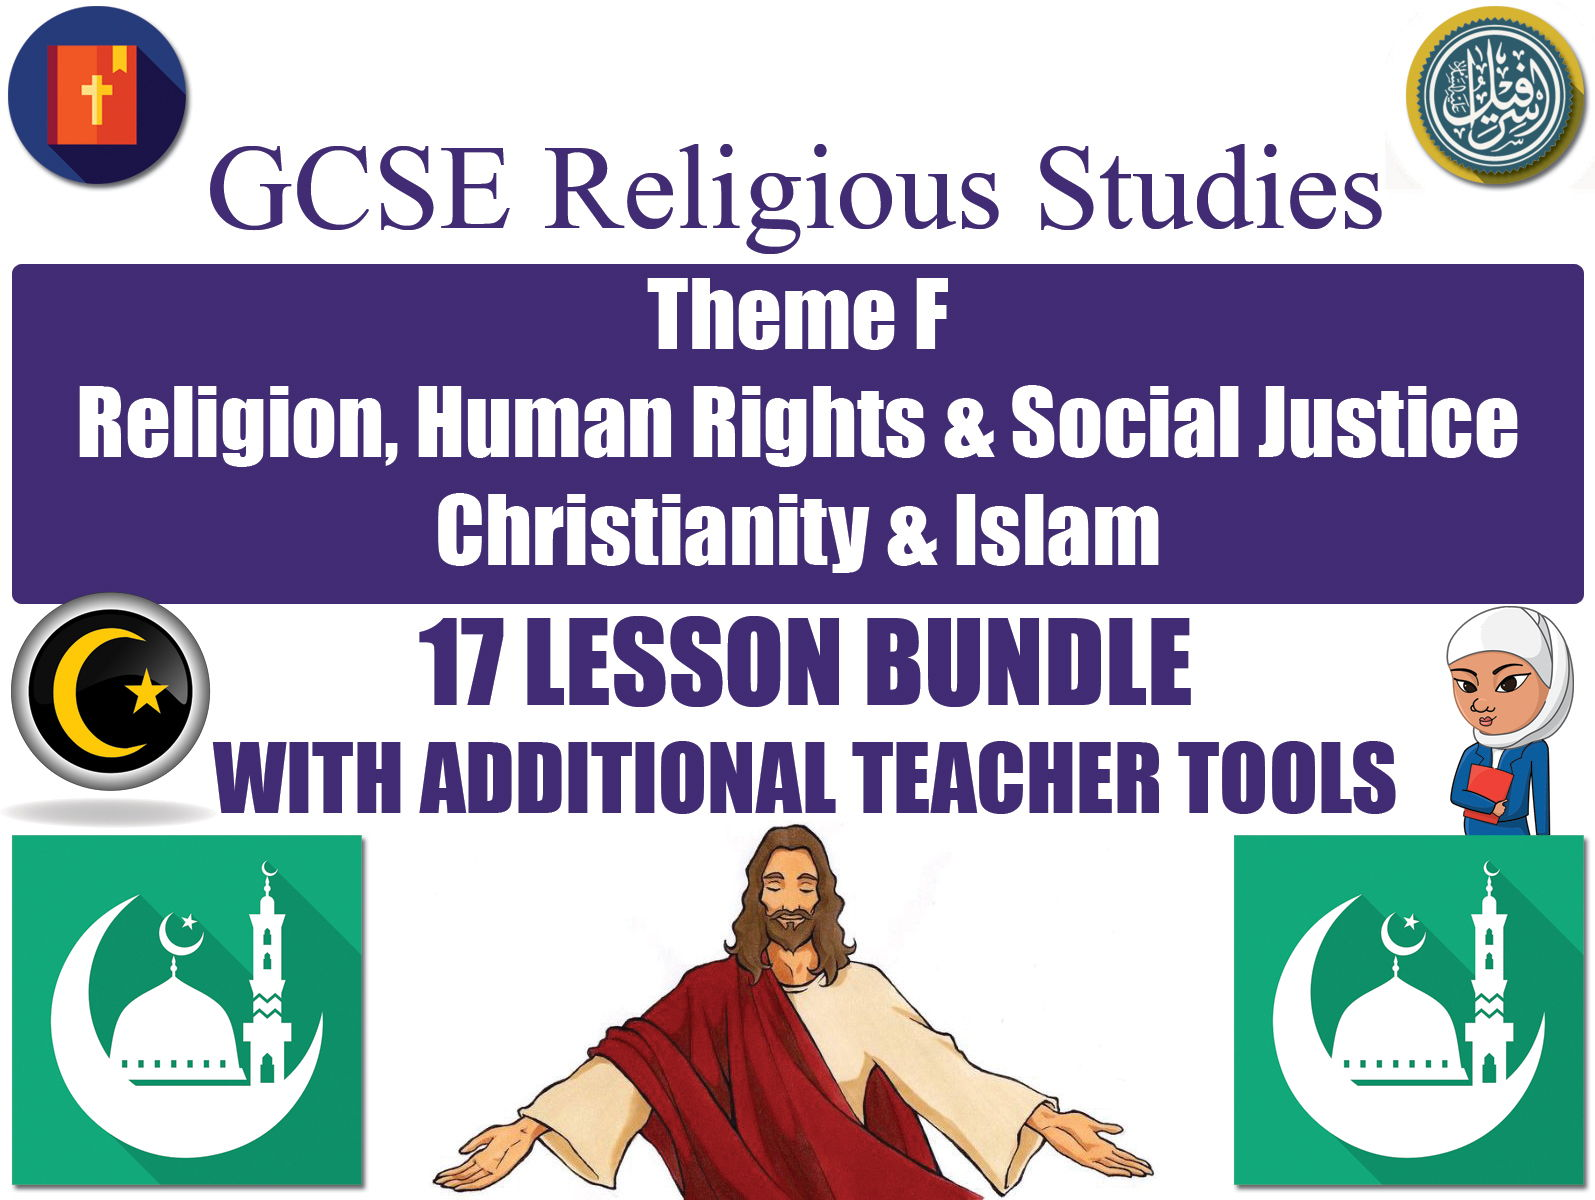 hight resolution of gcse islam christianity religion human rights social justice 17 lessons by godwin86 teaching resources tes